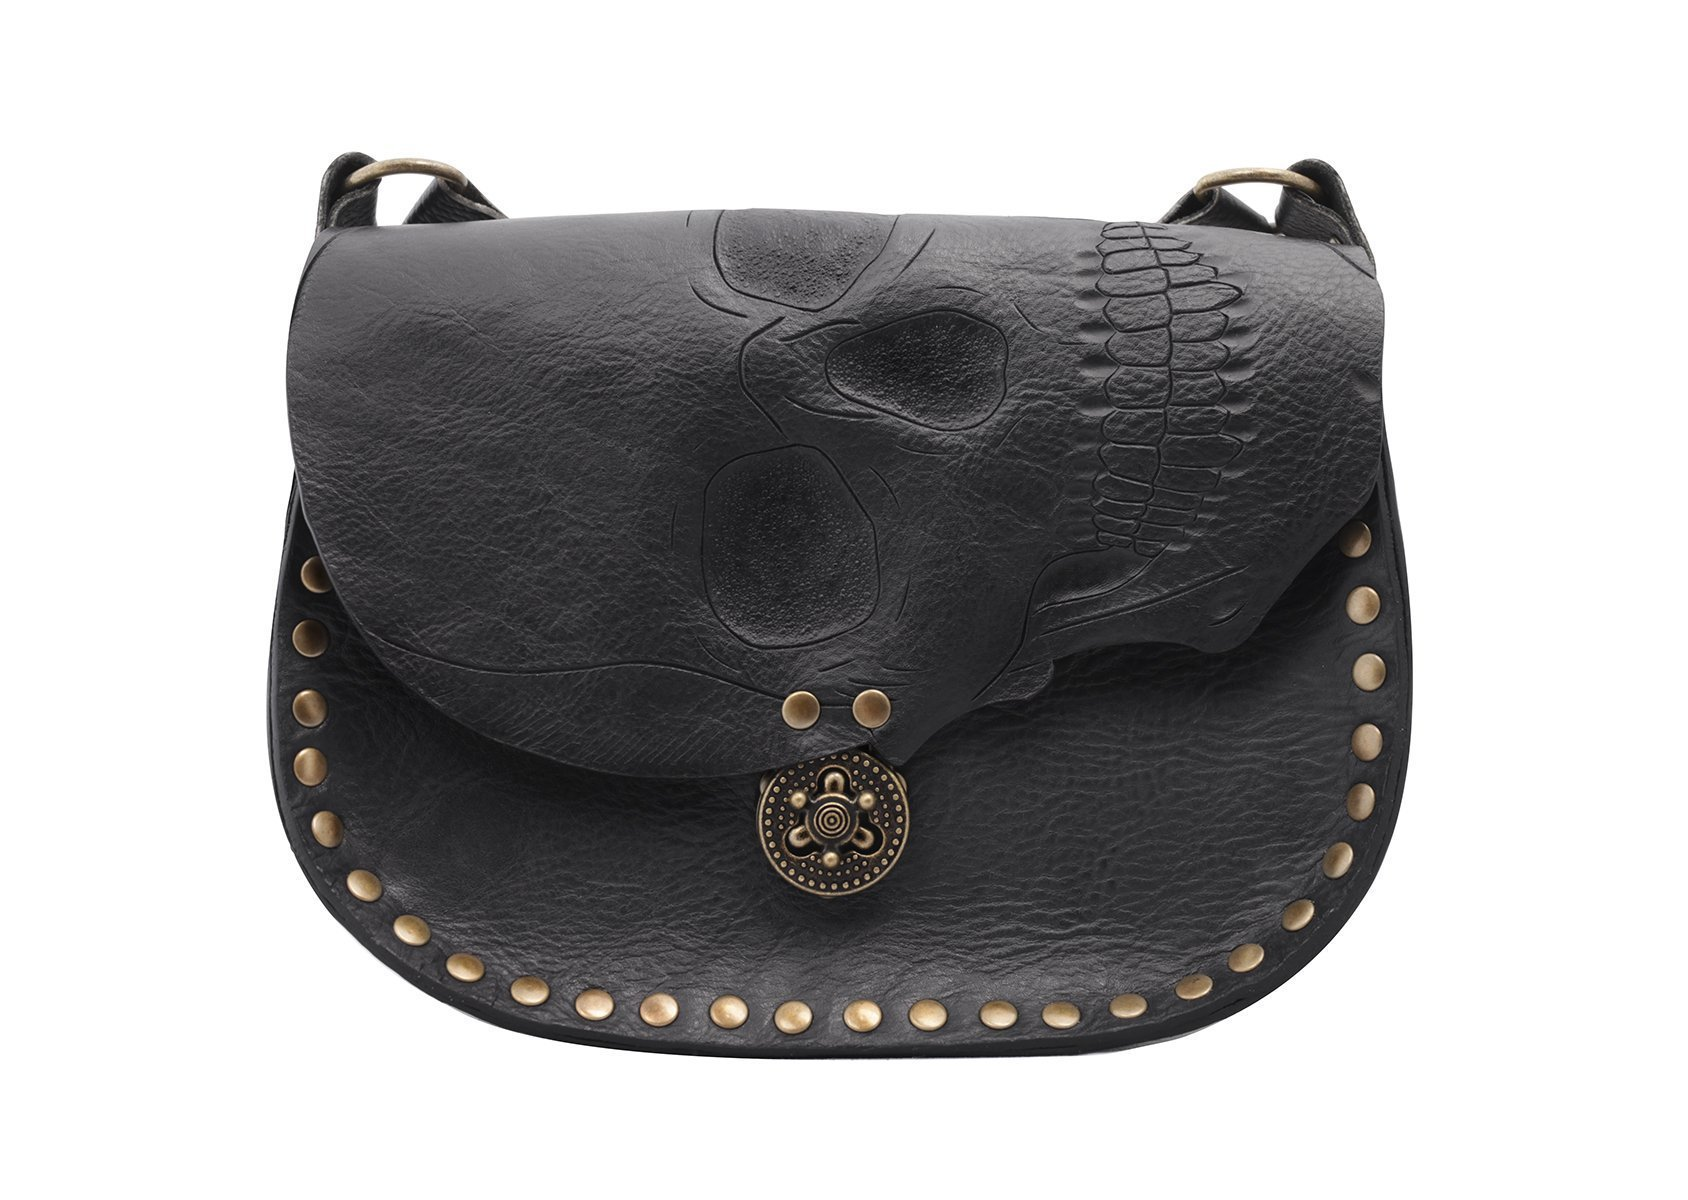 Handmade leather black skull cross body bag with adjustable strap and locking closure